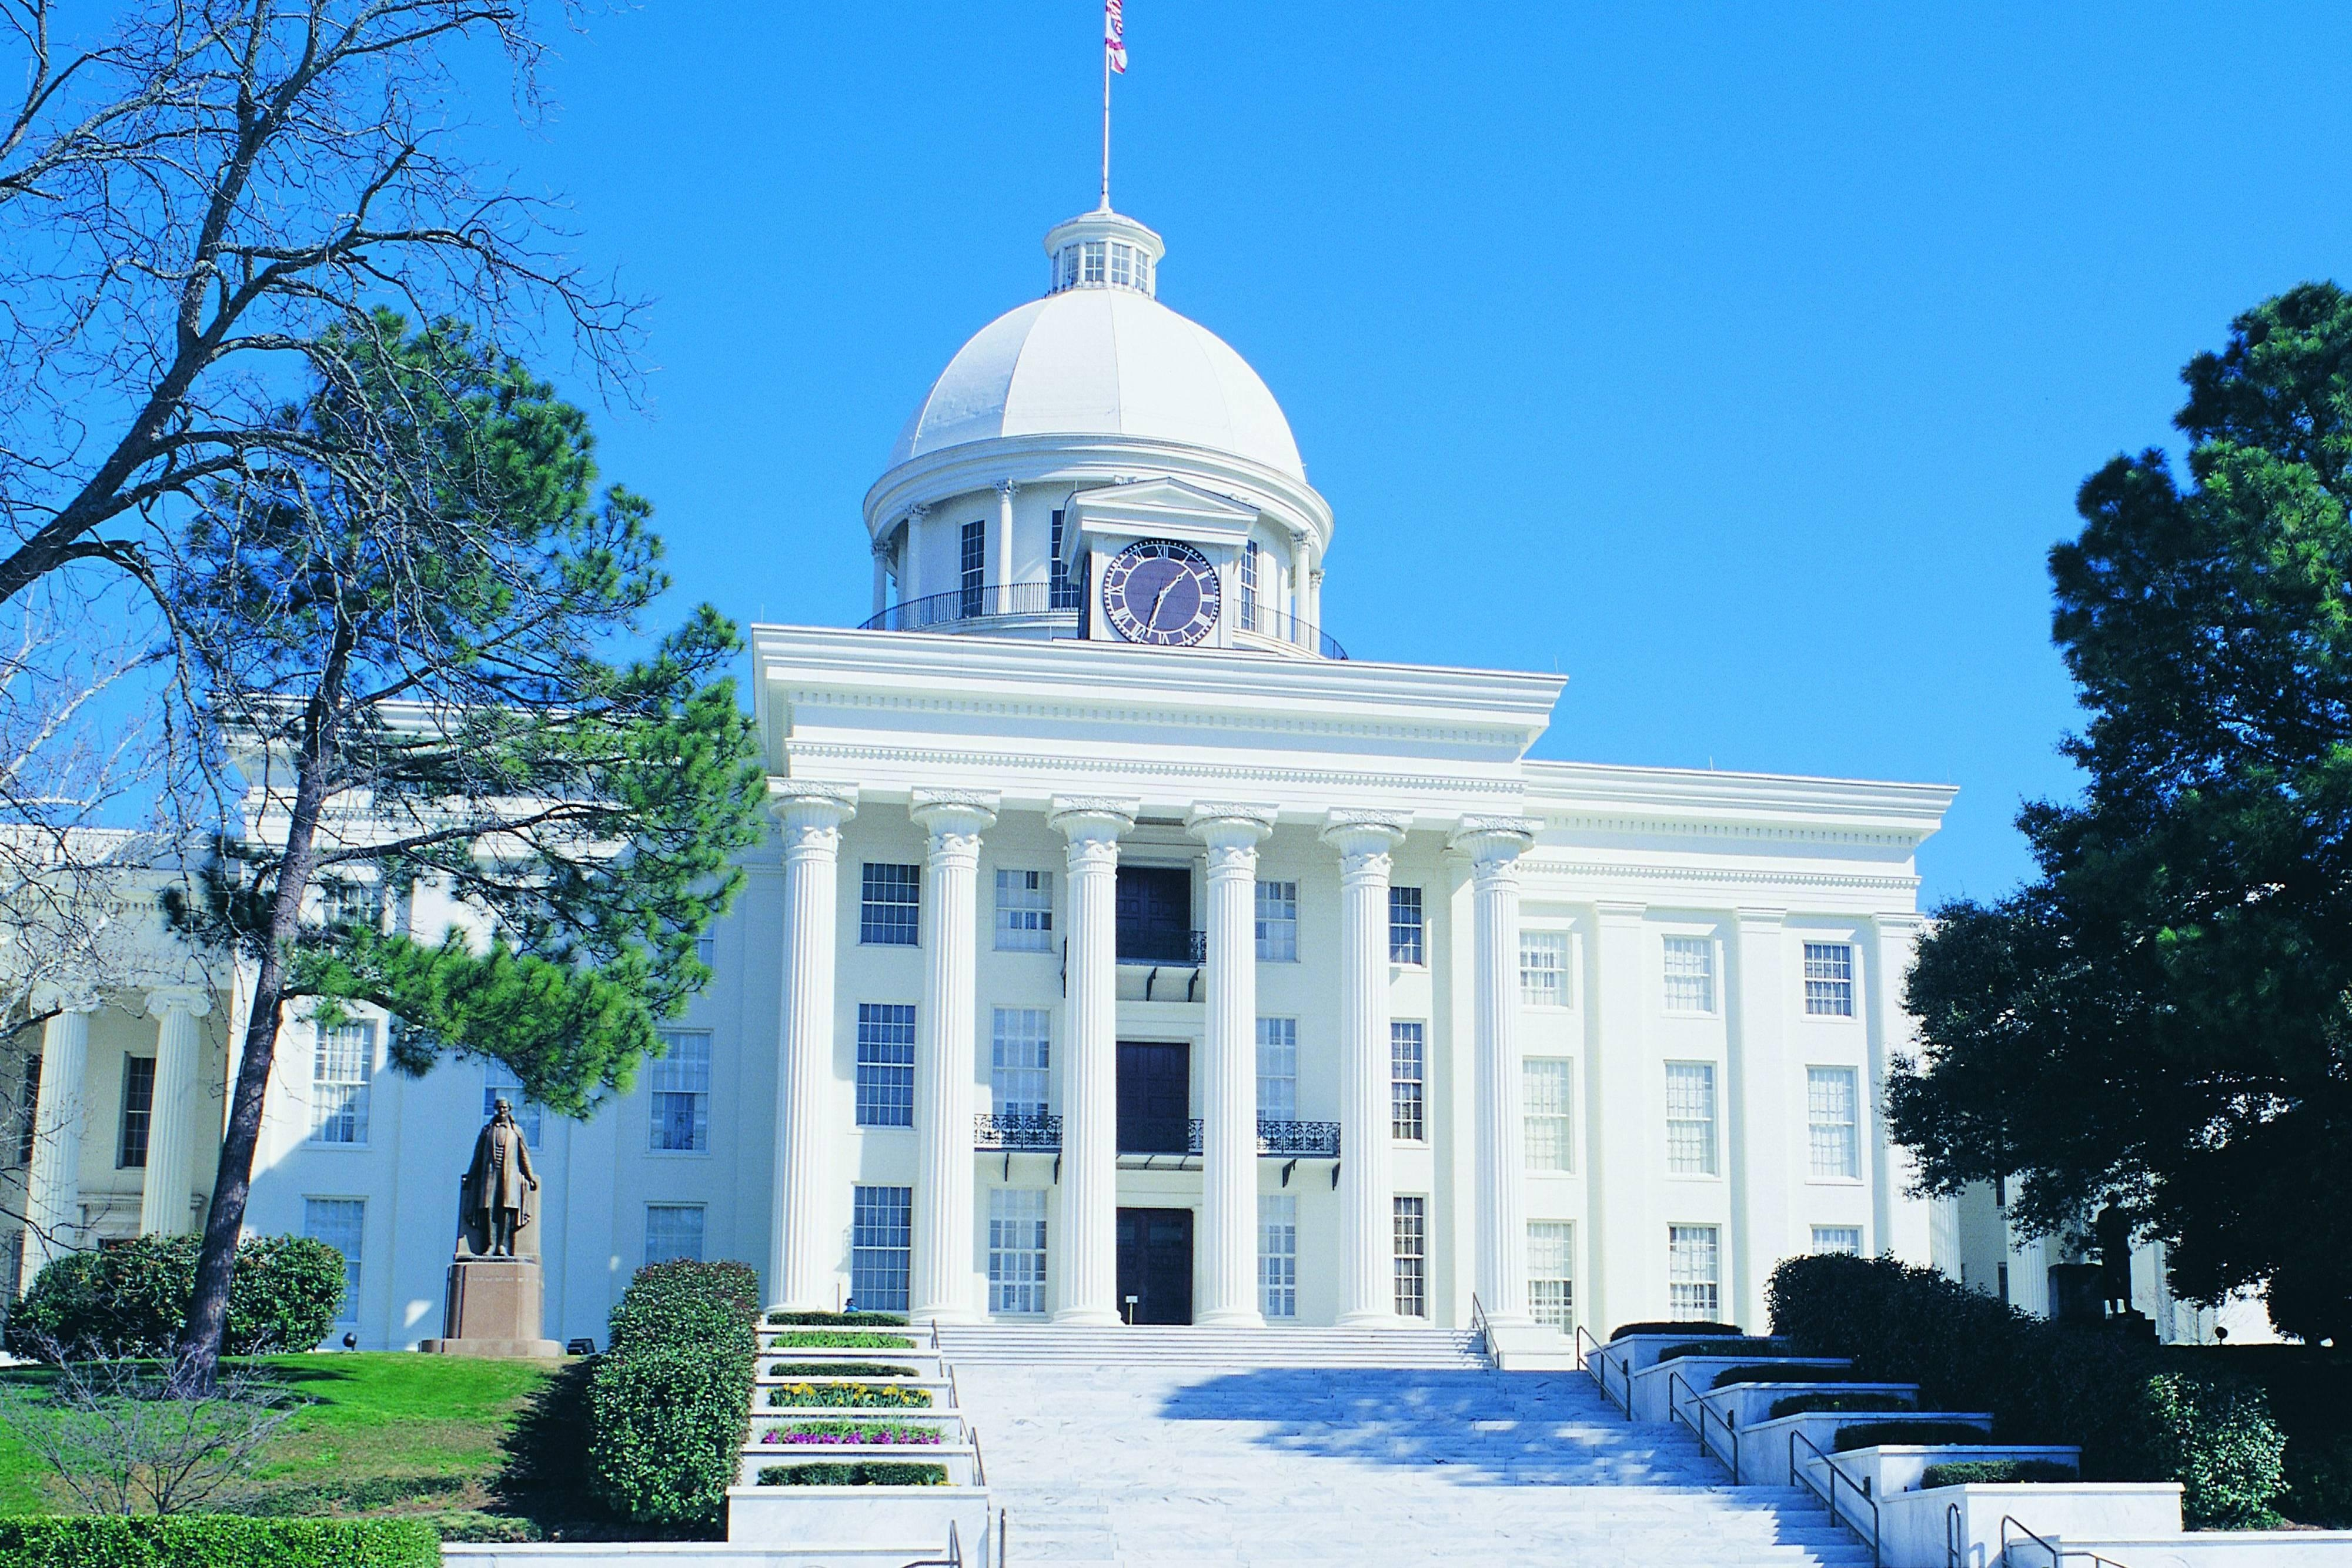 Capitol building of Alabama